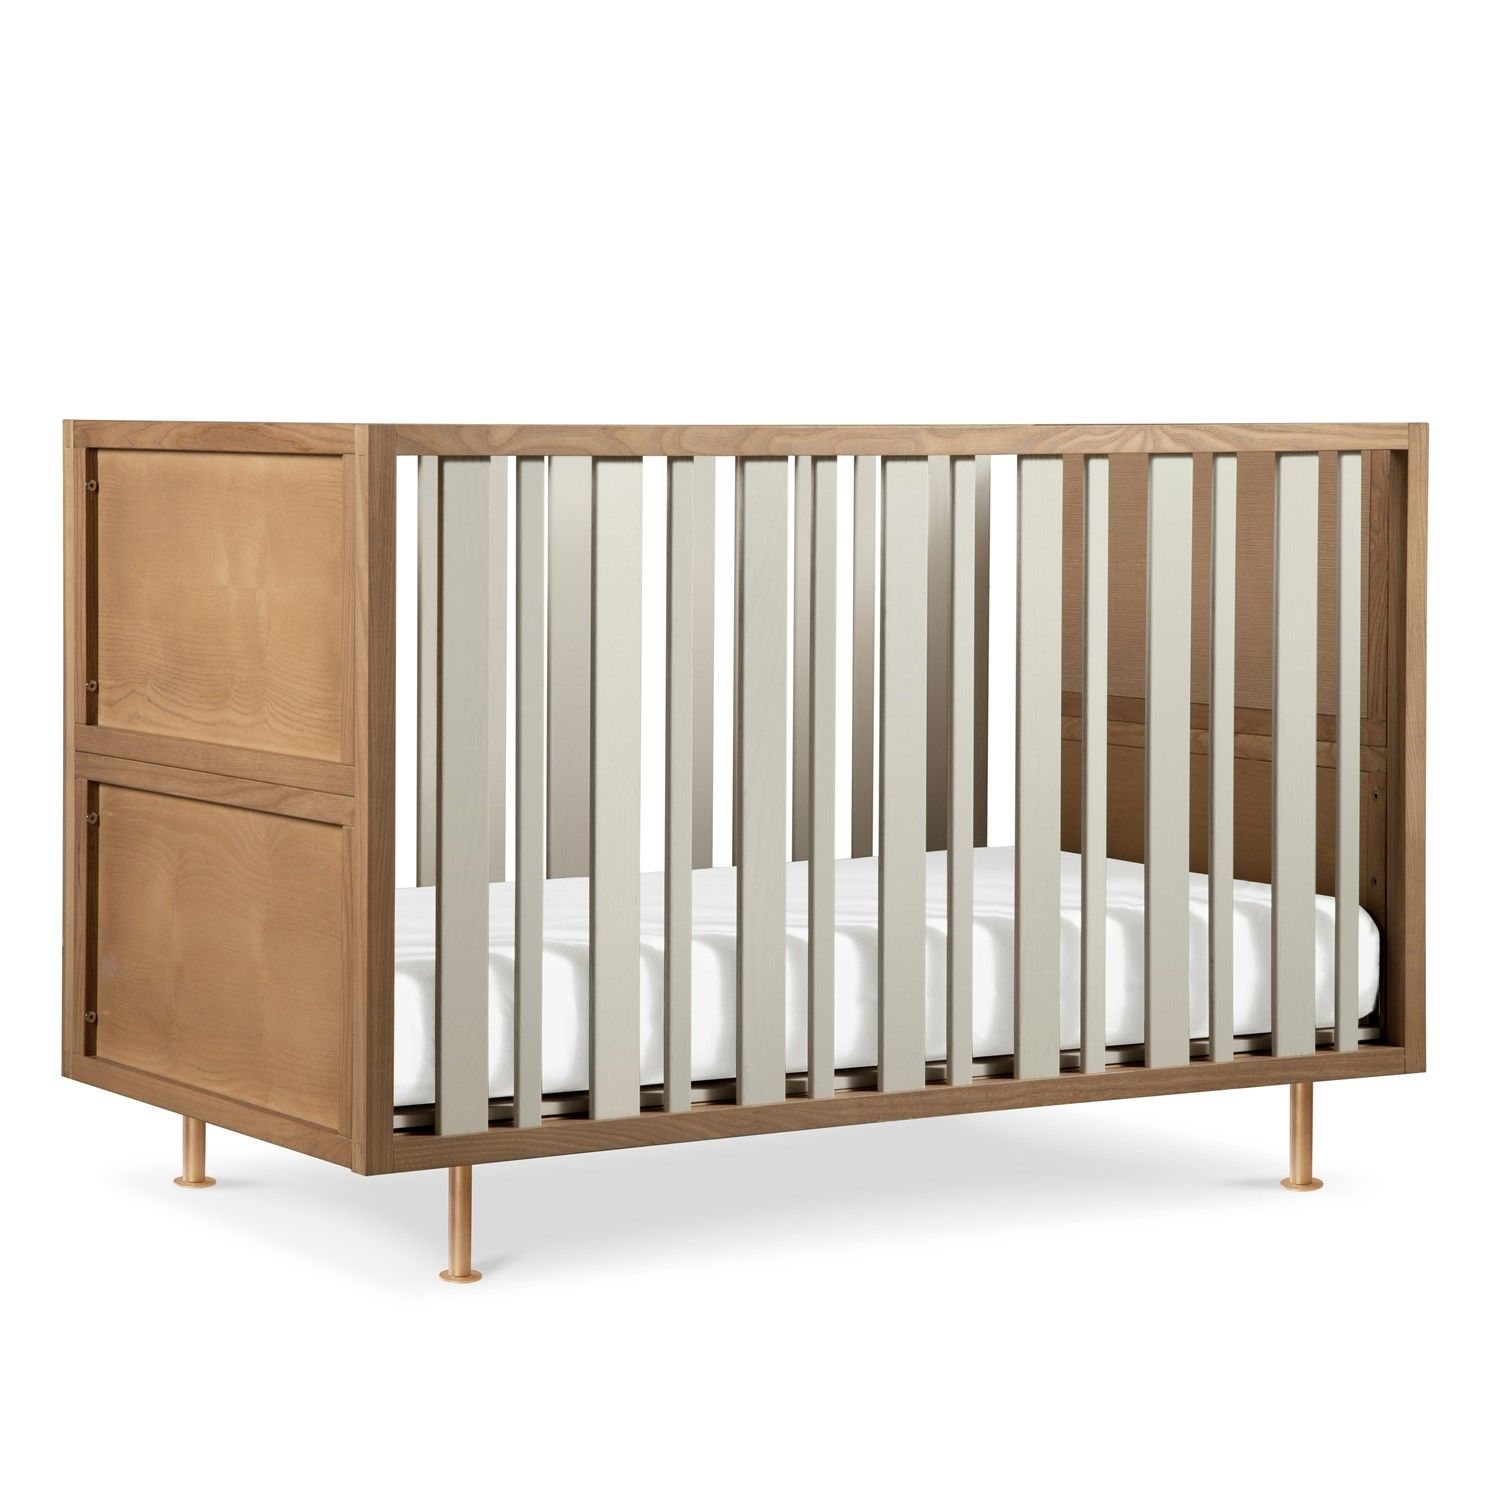 Designed to grow with your child, the Novella Convertible Crib cleverly transforms into several pieces of furniture. http://www.yliving.com/nurseryworks-novella-convertible-crib.html